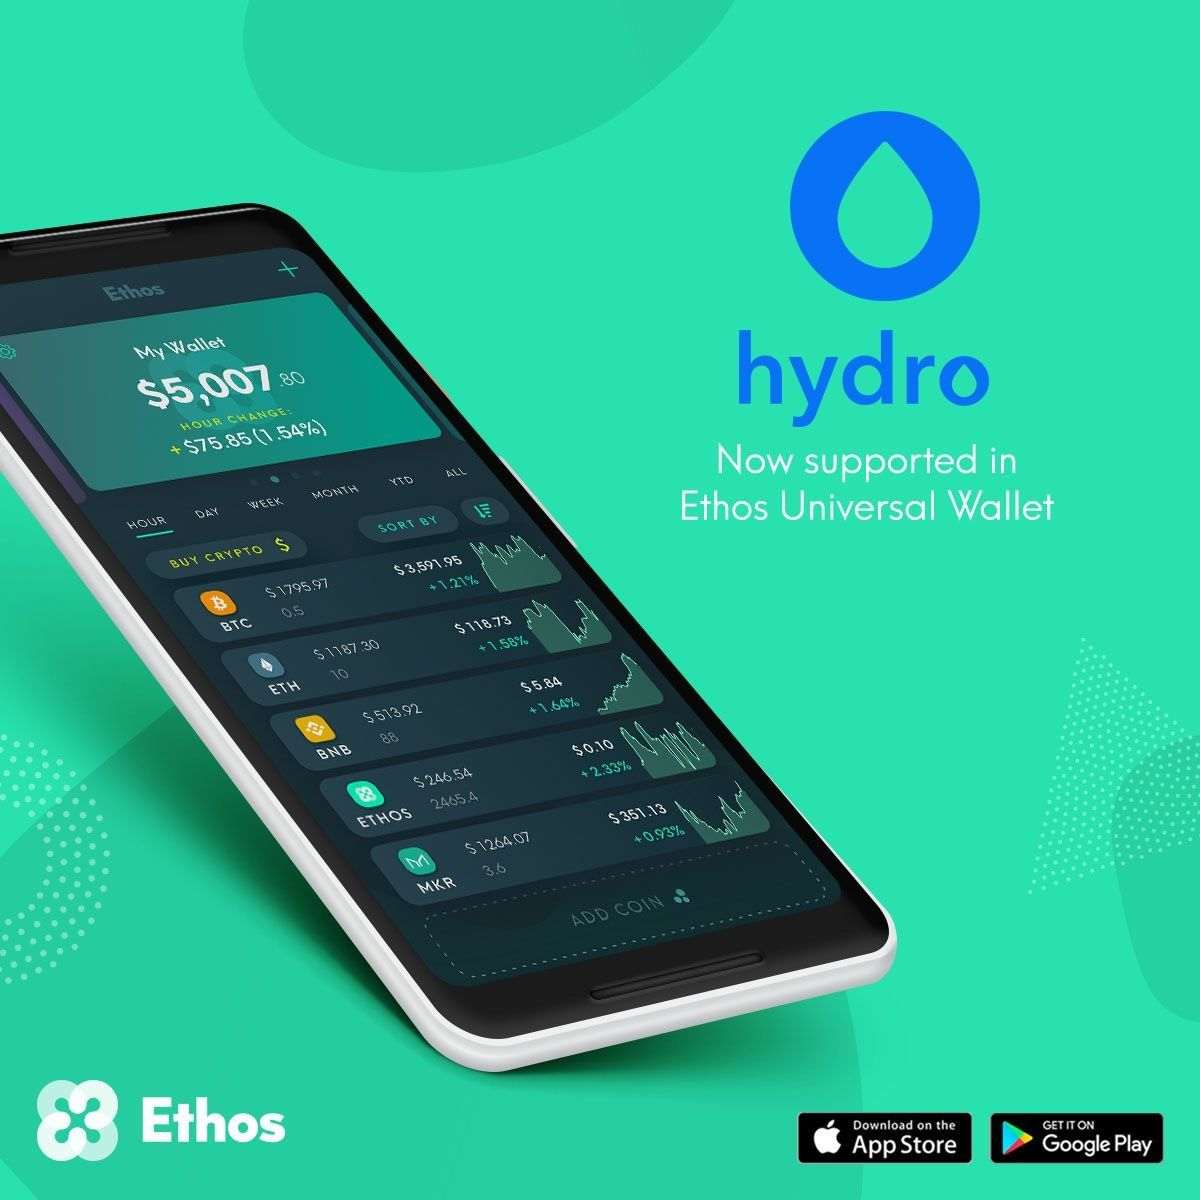 Project Hydro is Now Listed & Live on Ethos Universal